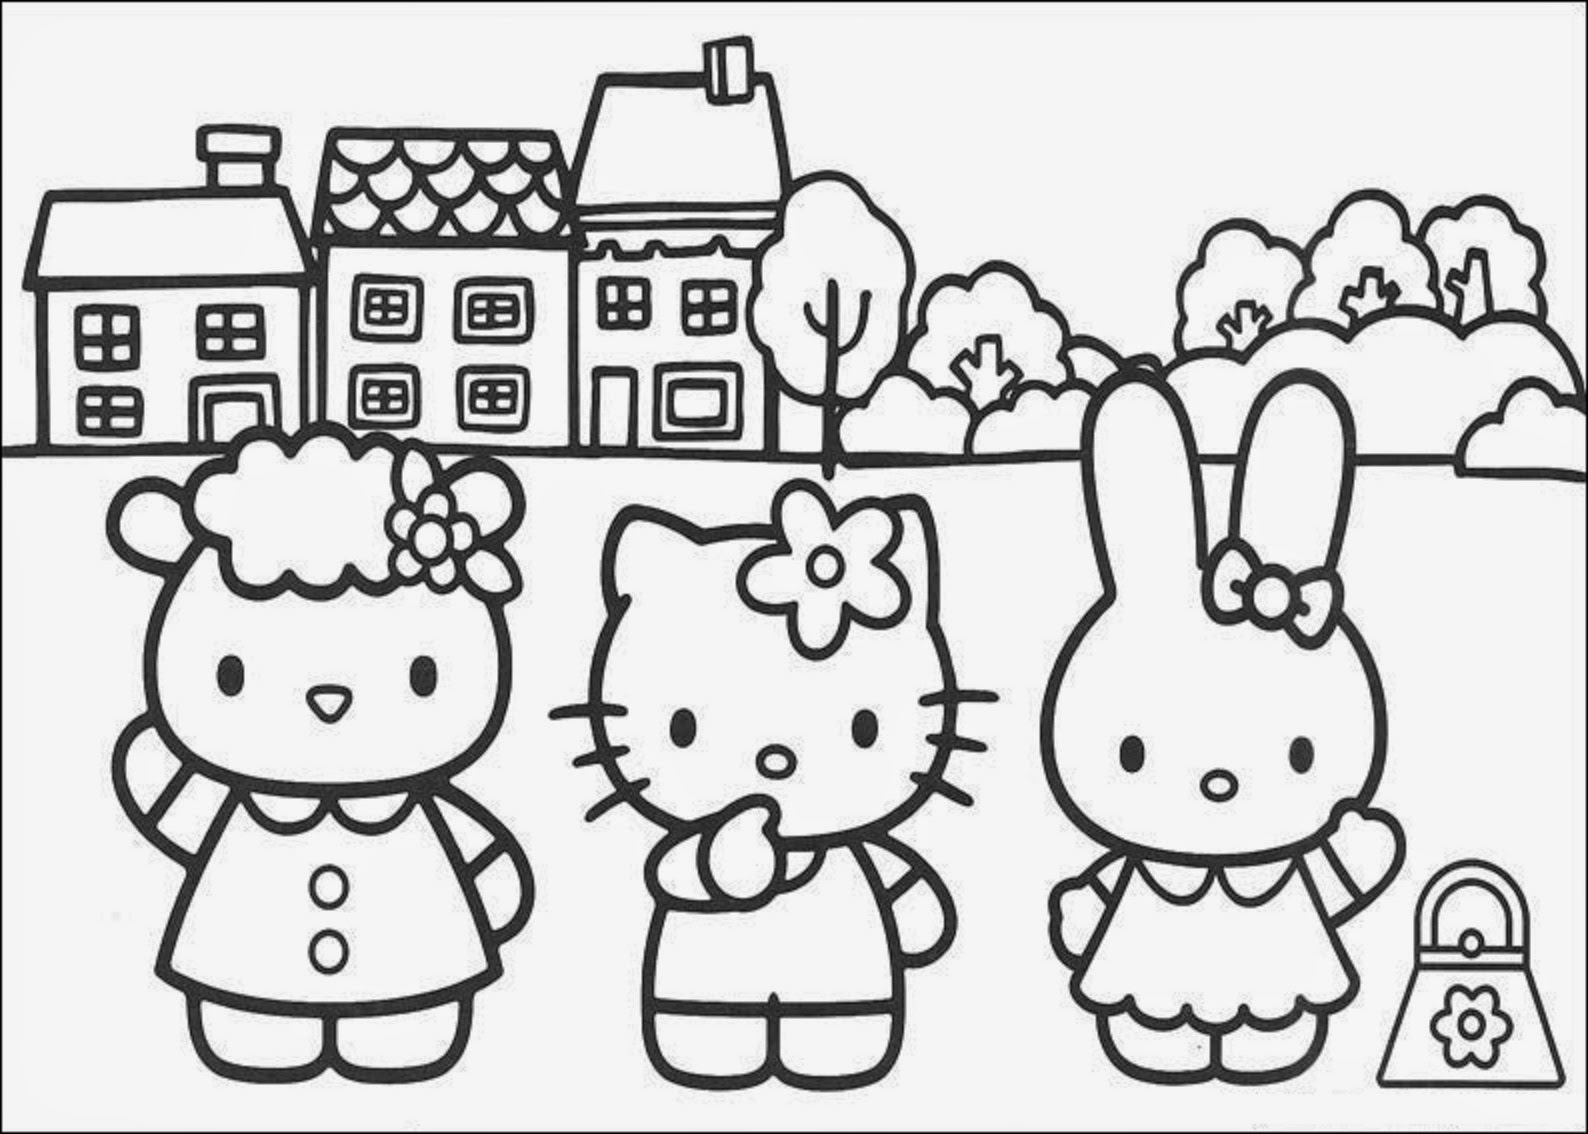 And hello kitty and friends coloring pages